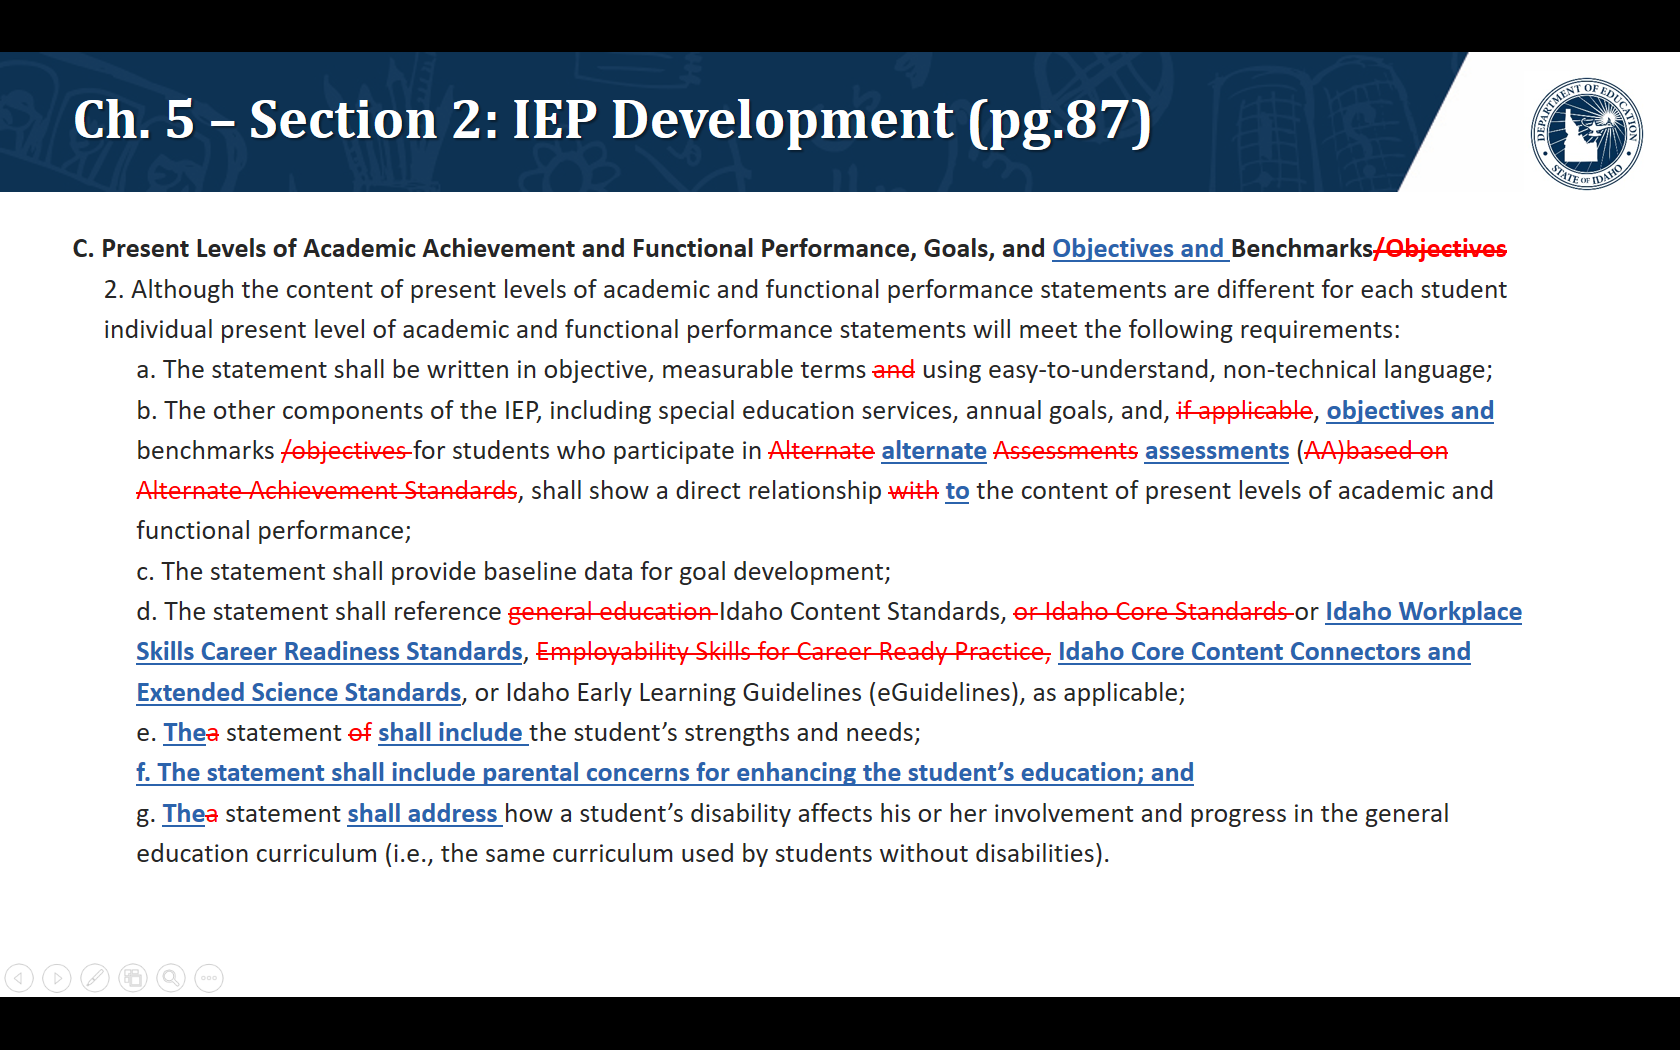 C. Present Levels of Academic Achievement and Functional Performance, Goals, and Objectives and Benchmarks 2. Although the content of present levels of academic and functional performance statements are different for each student   individual present level of academic and functional performance statements will meet the following requirements: a. The statement shall be written in objective, measurable terms using easy-to-understand, non-technical language; b. The other components of the IEP, including special education services, annual goals, and, objectives and benchmarks for students who participate in alternate assessments shall show a direct relationship to the content of present levels of academic and functional performance;  c. The statement shall provide baseline data for goal development;  d. The statement shall reference Idaho Content Standards, or Idaho Workplace Skills Career Readiness Standards, Idaho Core Content Connectors and Extended Science Standards, or Idaho Early Learning Guidelines (eGuidelines), as applicable; e. The statement shall include the student's strengths and needs;  f. The statement shall include parental concerns for enhancing the student's education; and g. The statement shall address how a student's disability affects his or her involvement and progress in the general education curriculum (i.e., the same curriculum used by students without disabilities).